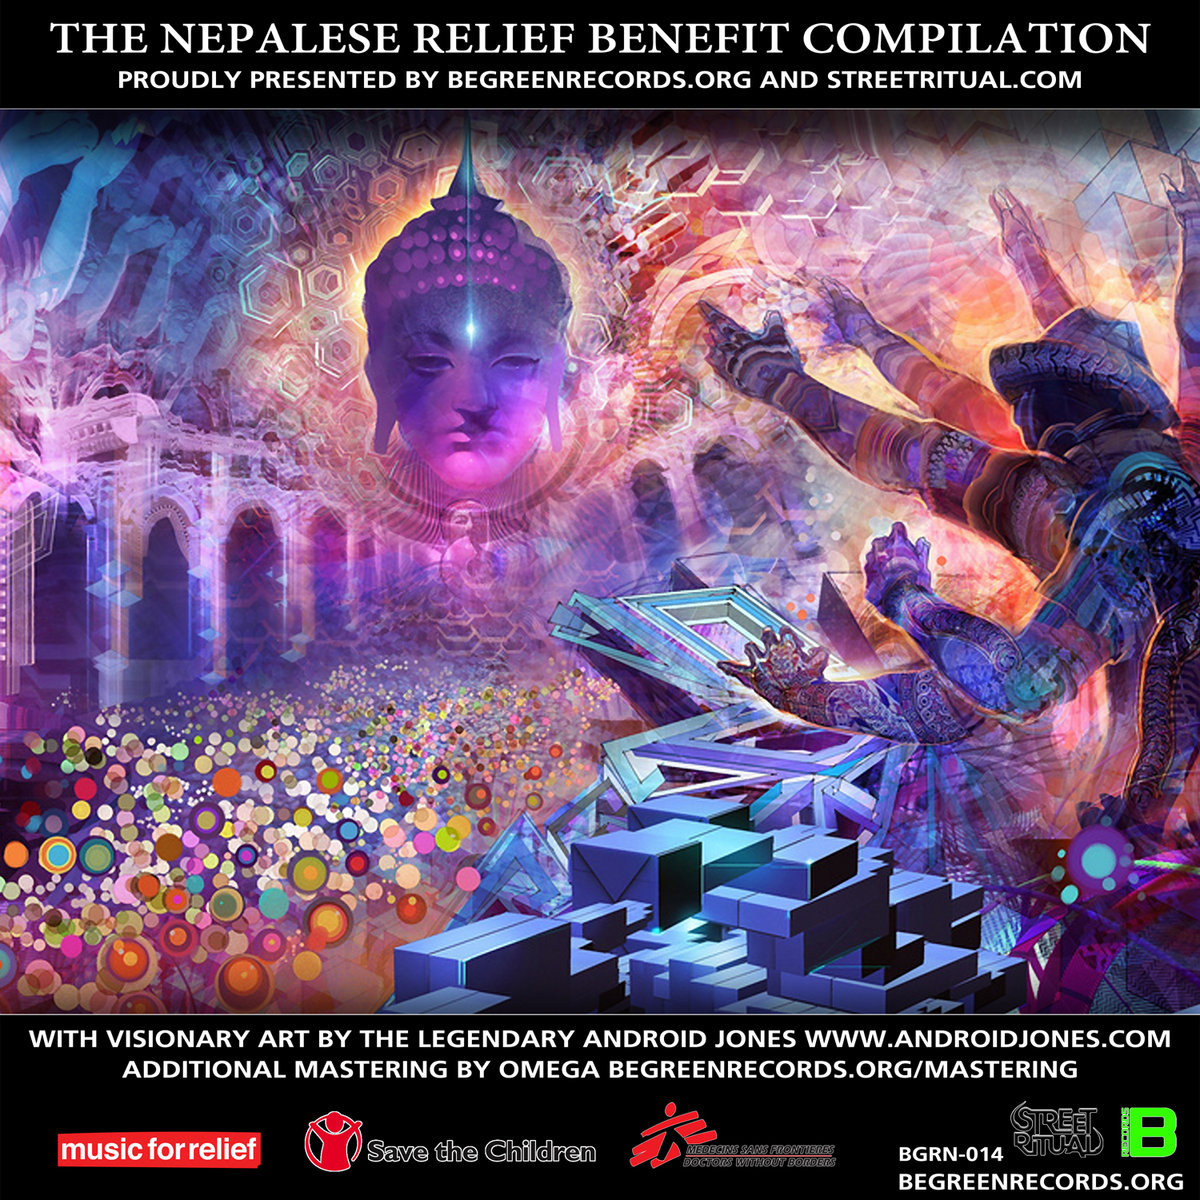 Dave Sweeten - Special Interest @ 'Various Artists - The Nepalese Relief Benefit Compilation' album (bass, electronic)